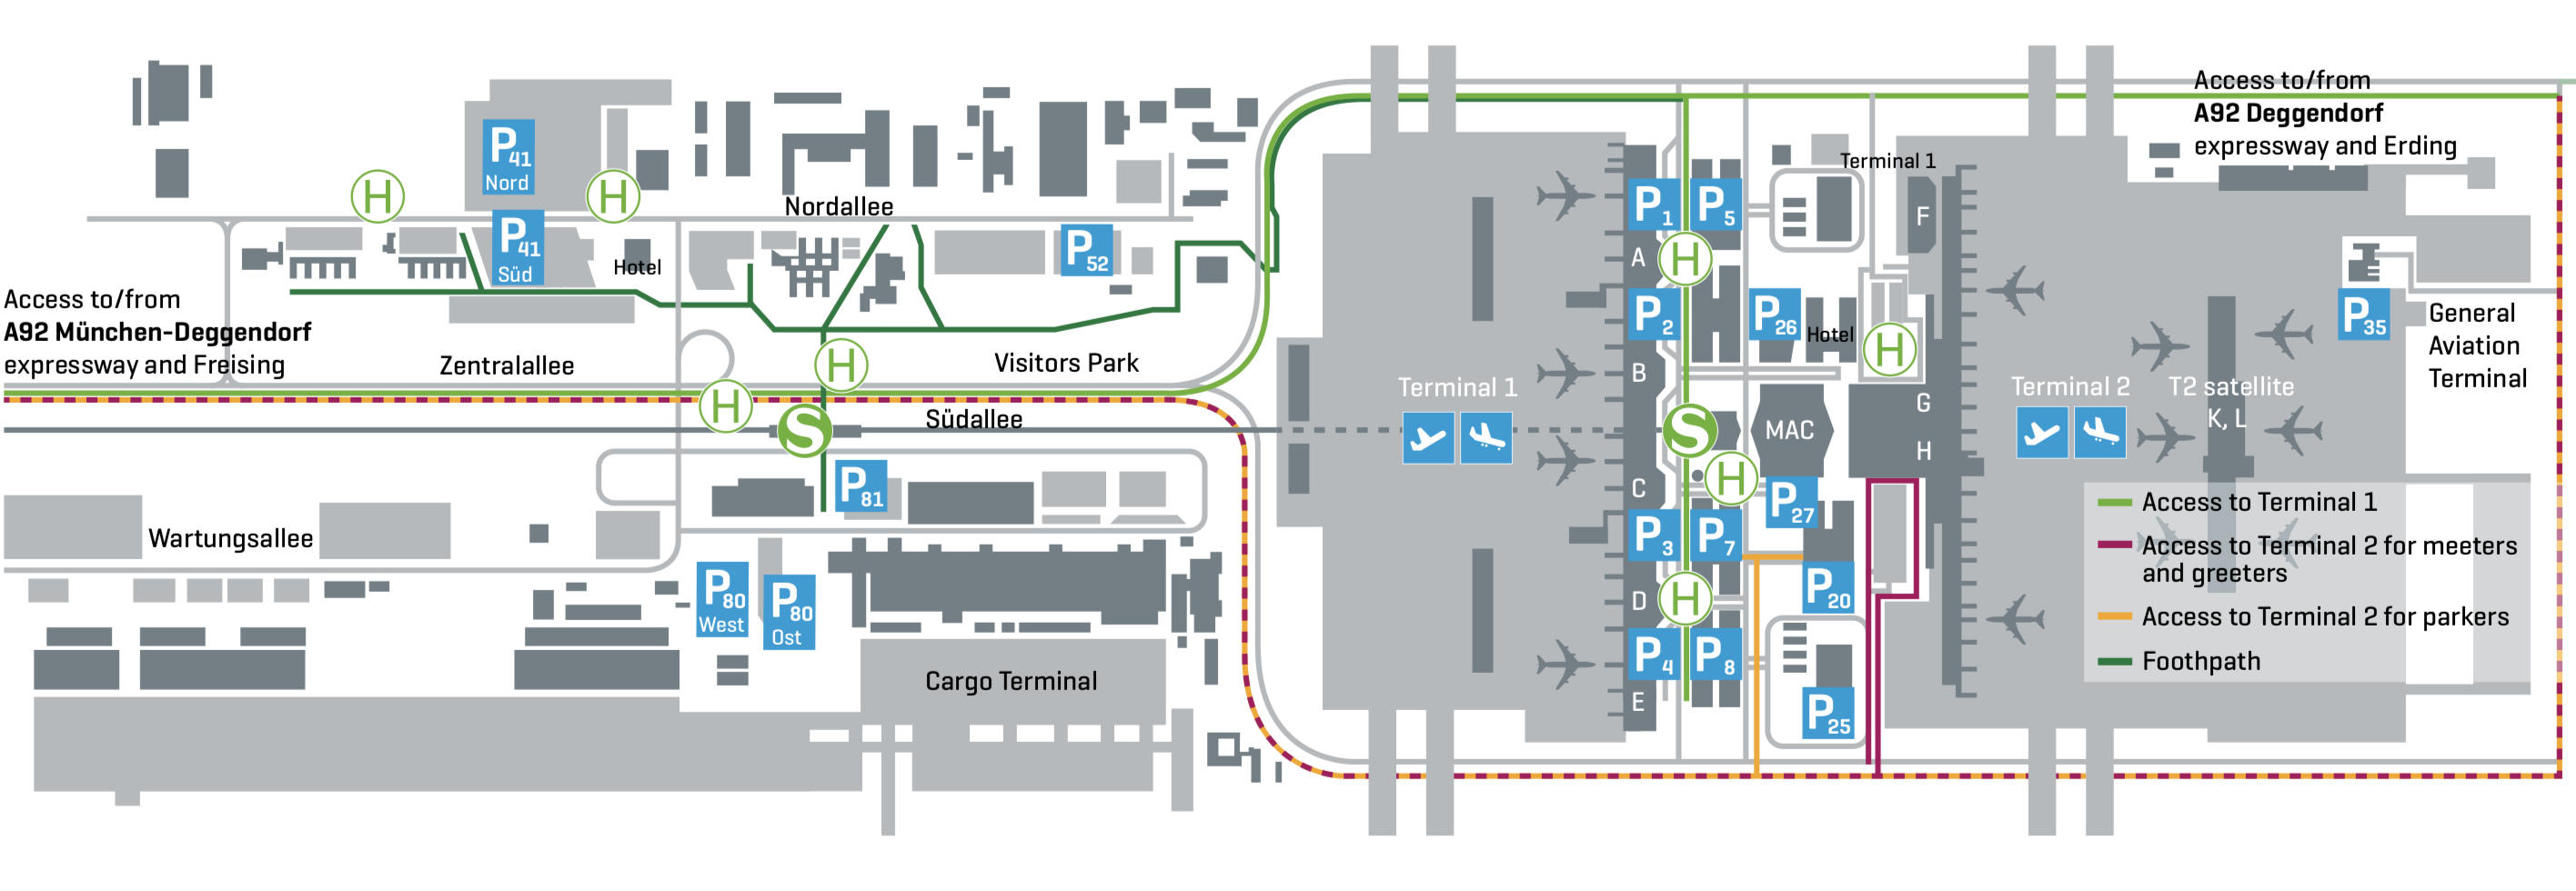 MUC Airport map